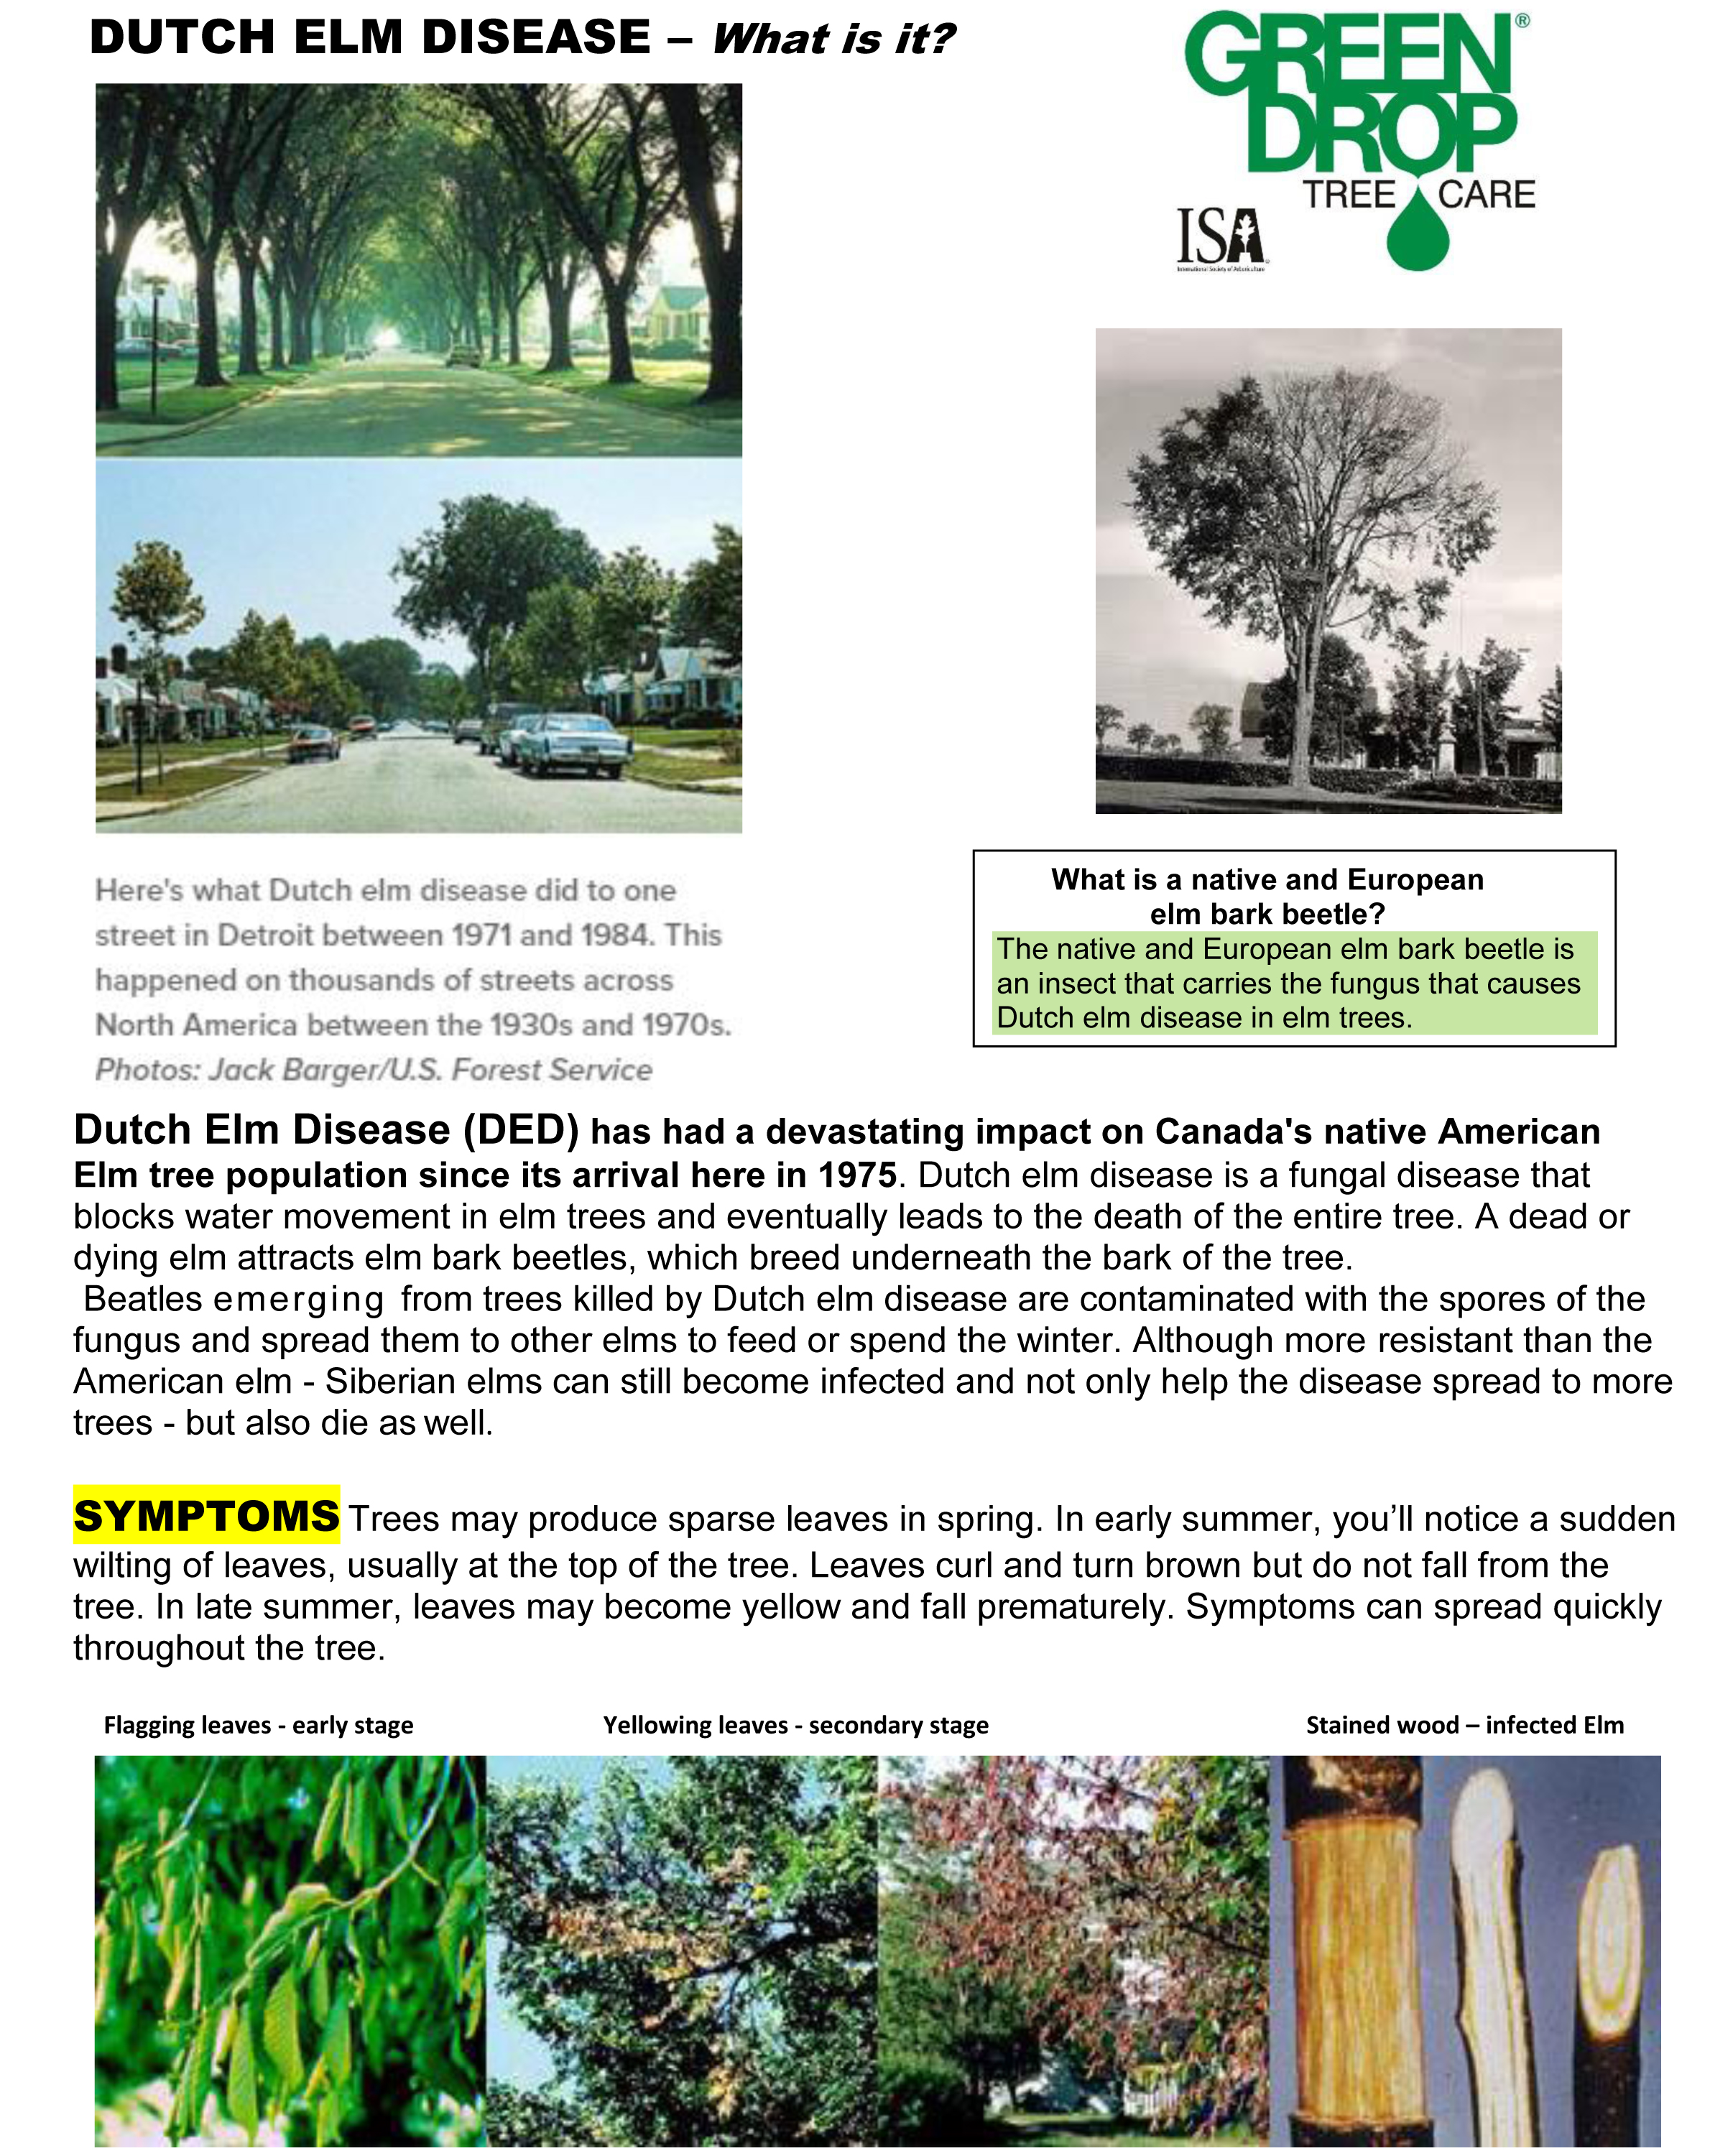 DUTCH ELM DISEASE fact sheet 1